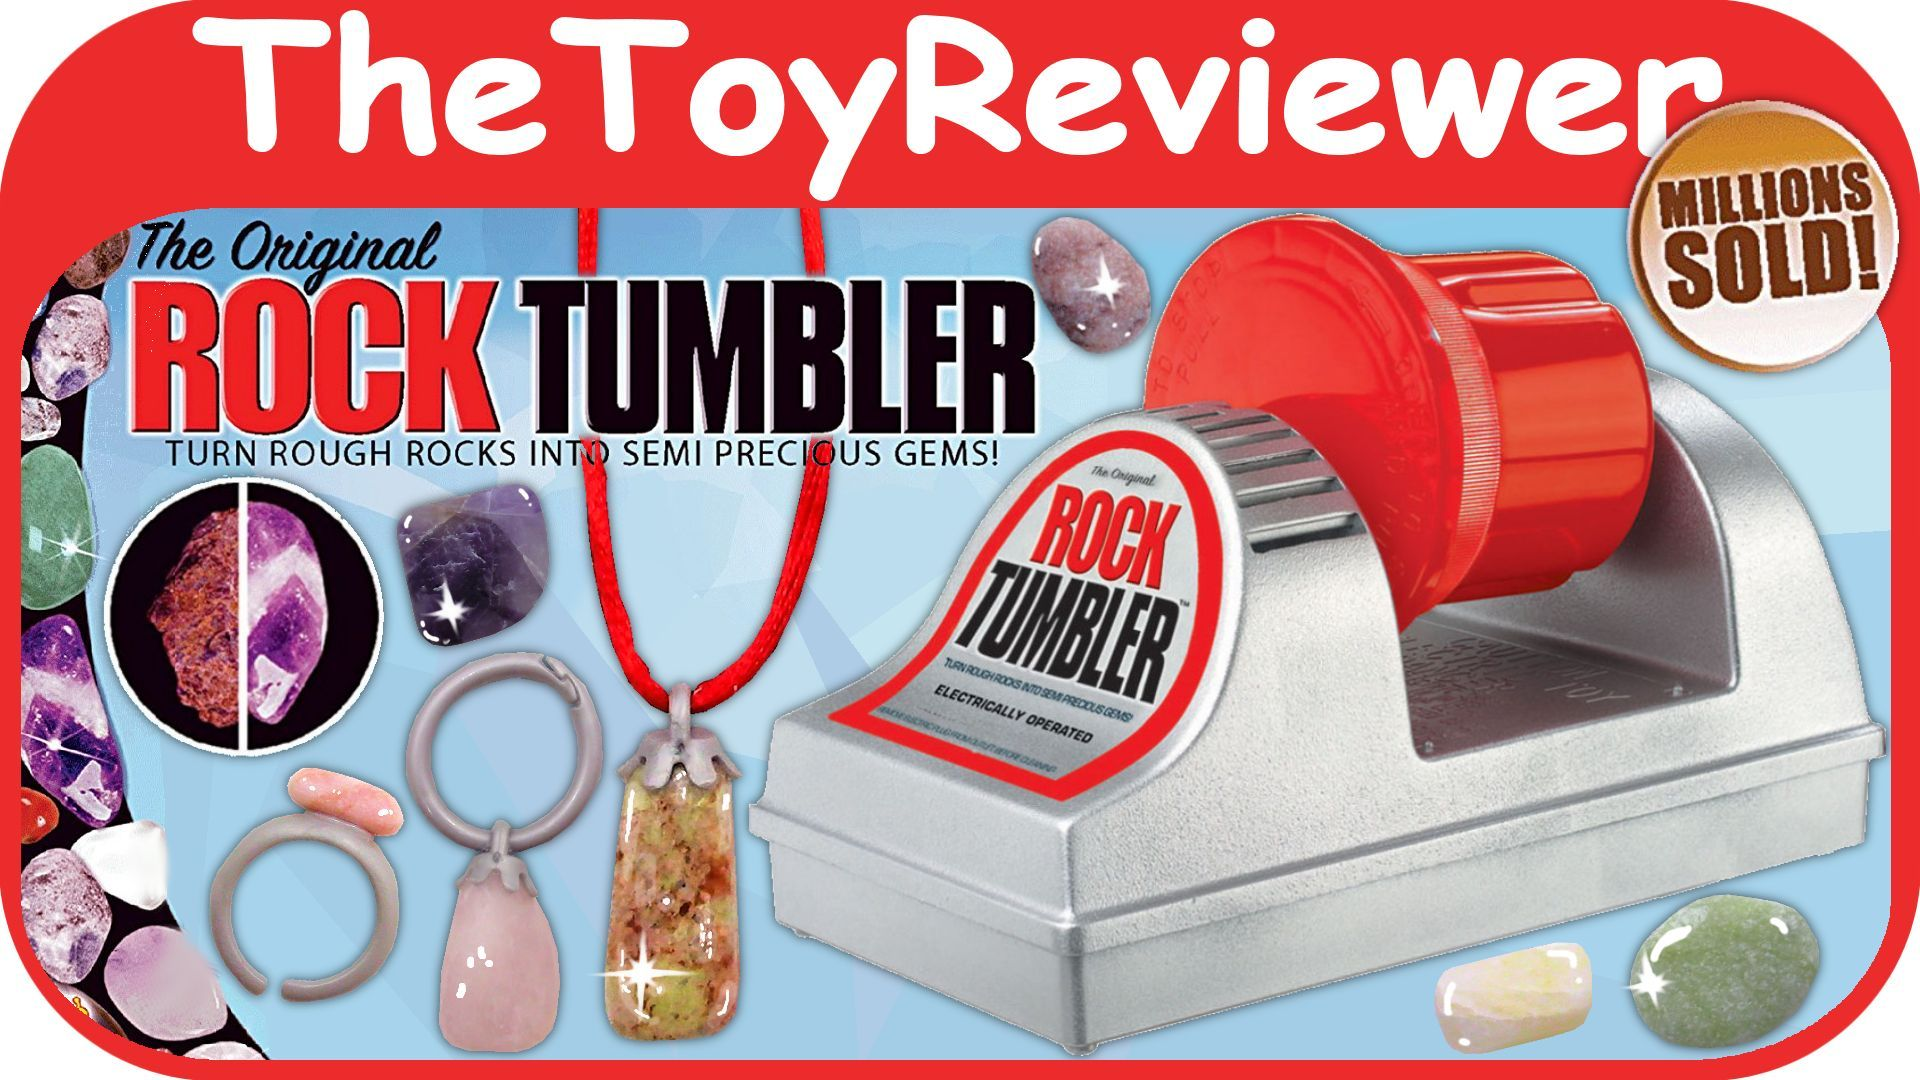 Check out the original rock tumbler here httpswww